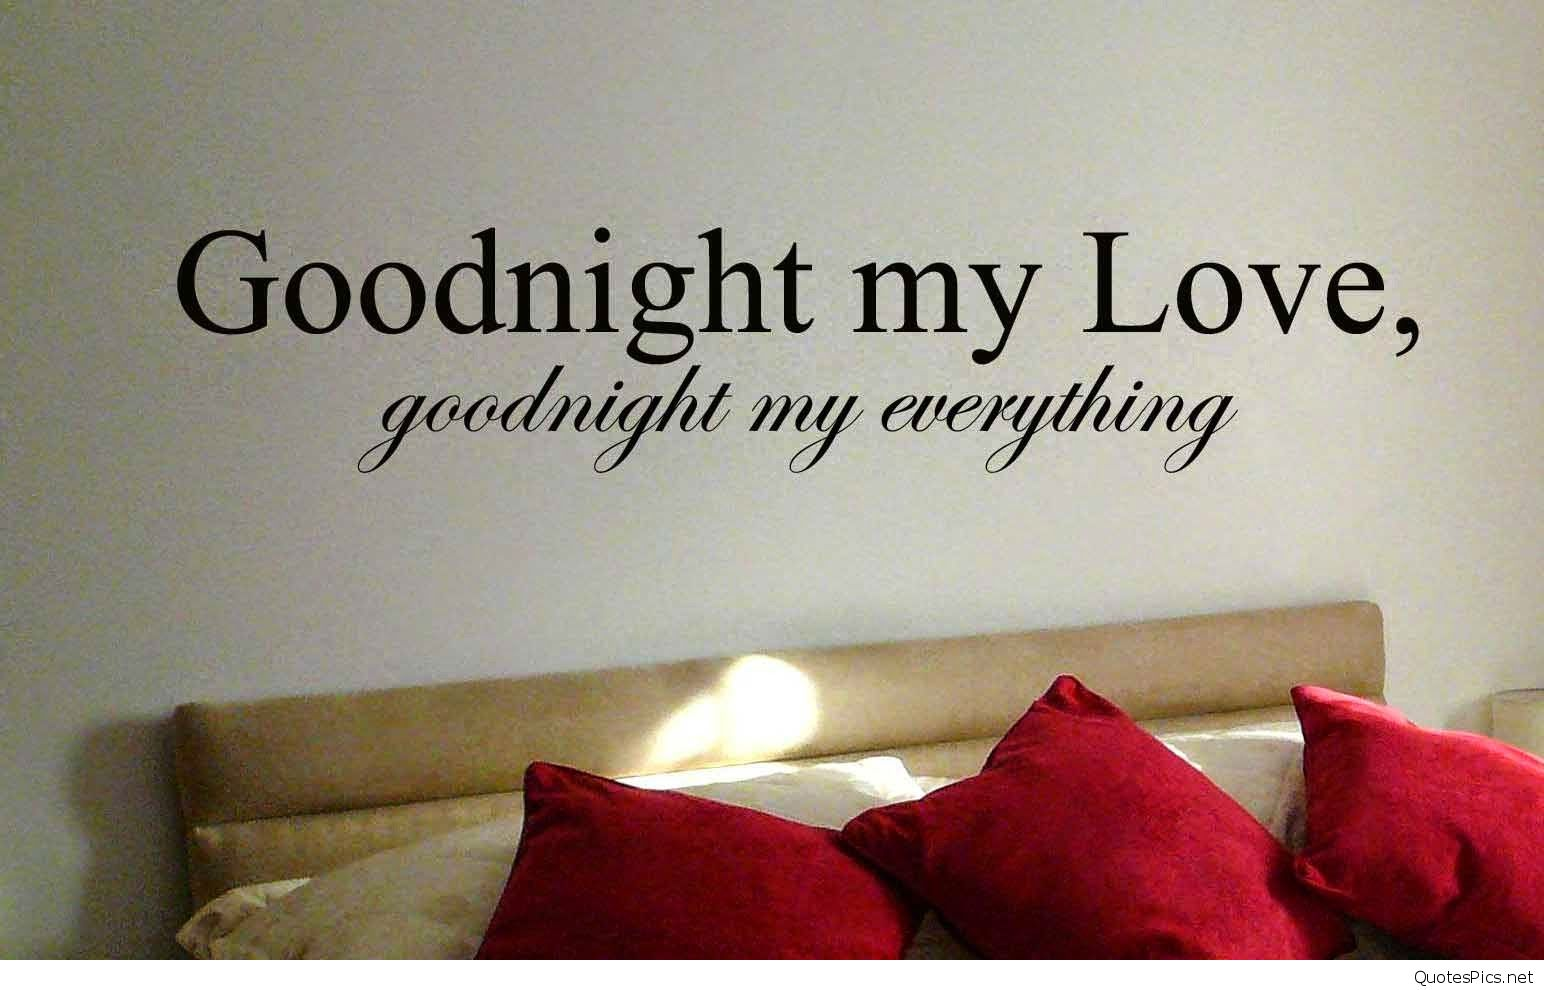 Good night wallpapers hd free download 1544x990 voltagebd Choice Image